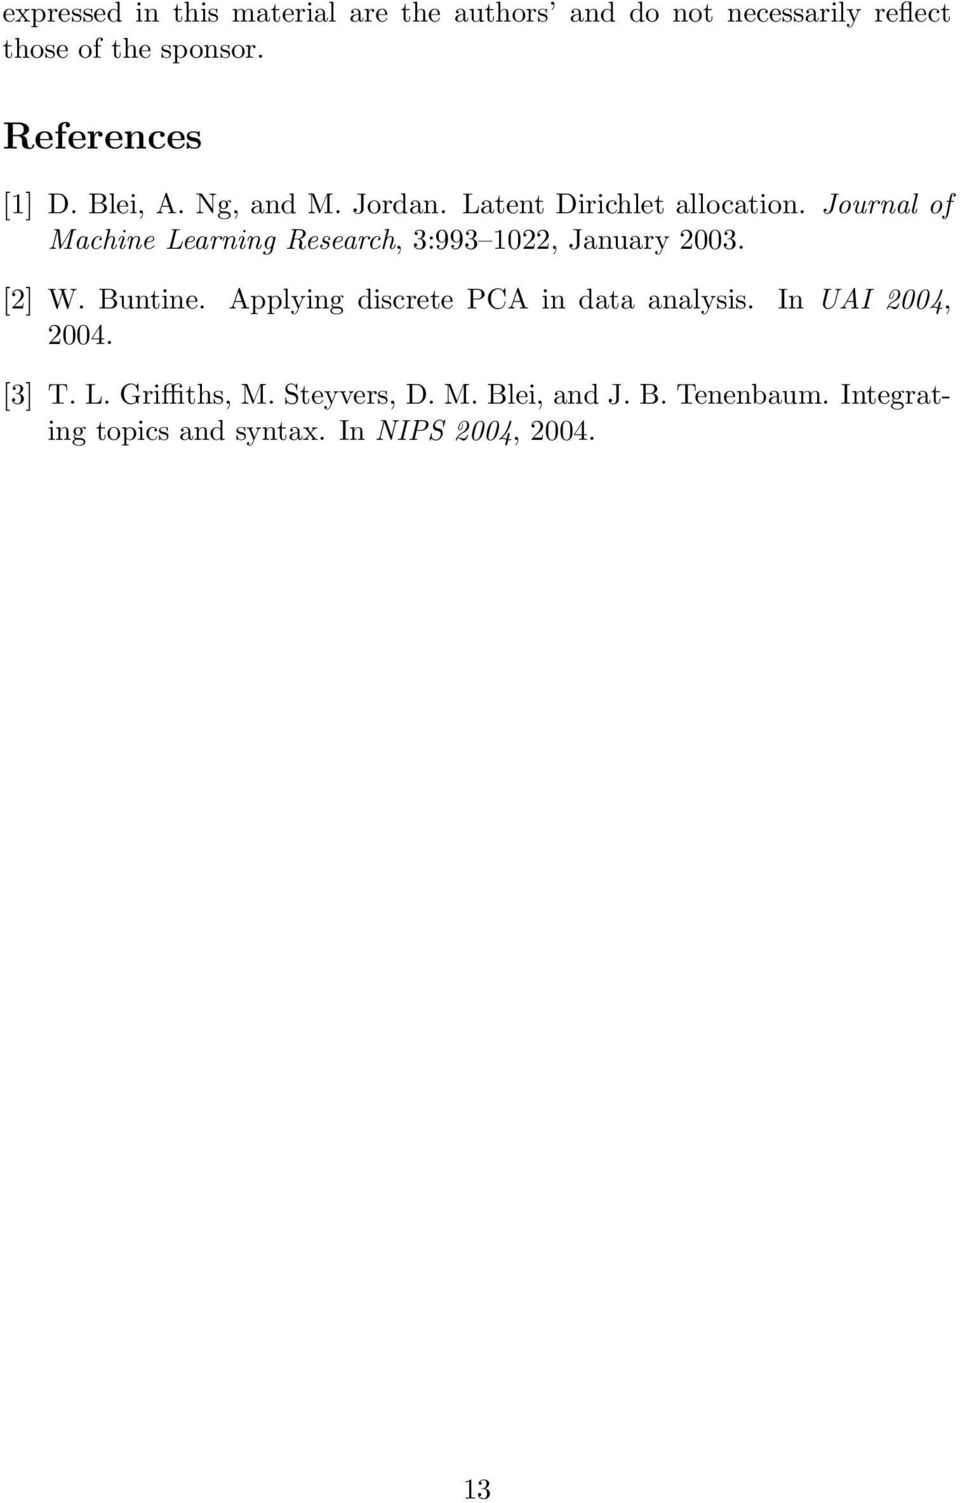 journal of machine learning research 3 993 1022 january 2003 2 w